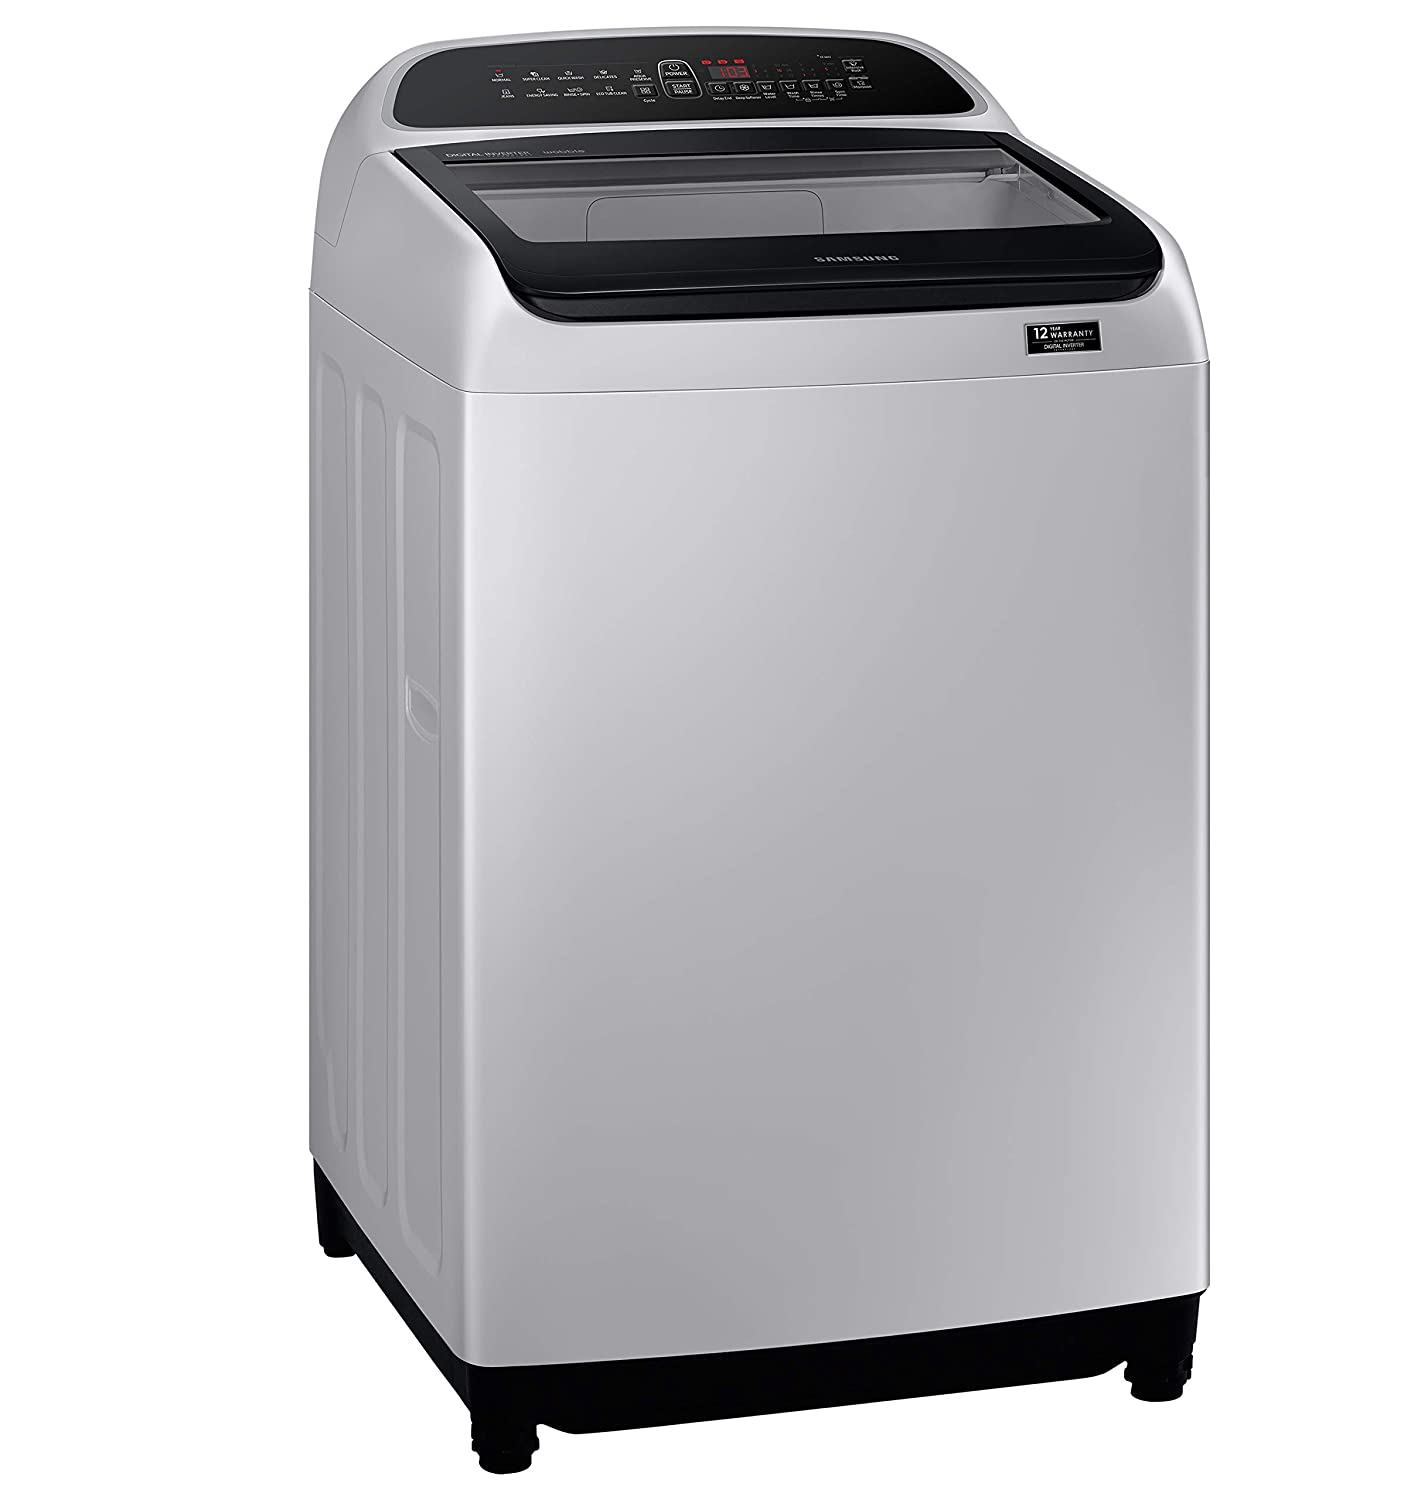 Samsung 9 Kg Inverter 5 Star Fully-Automatic Top Loading Washing Machine